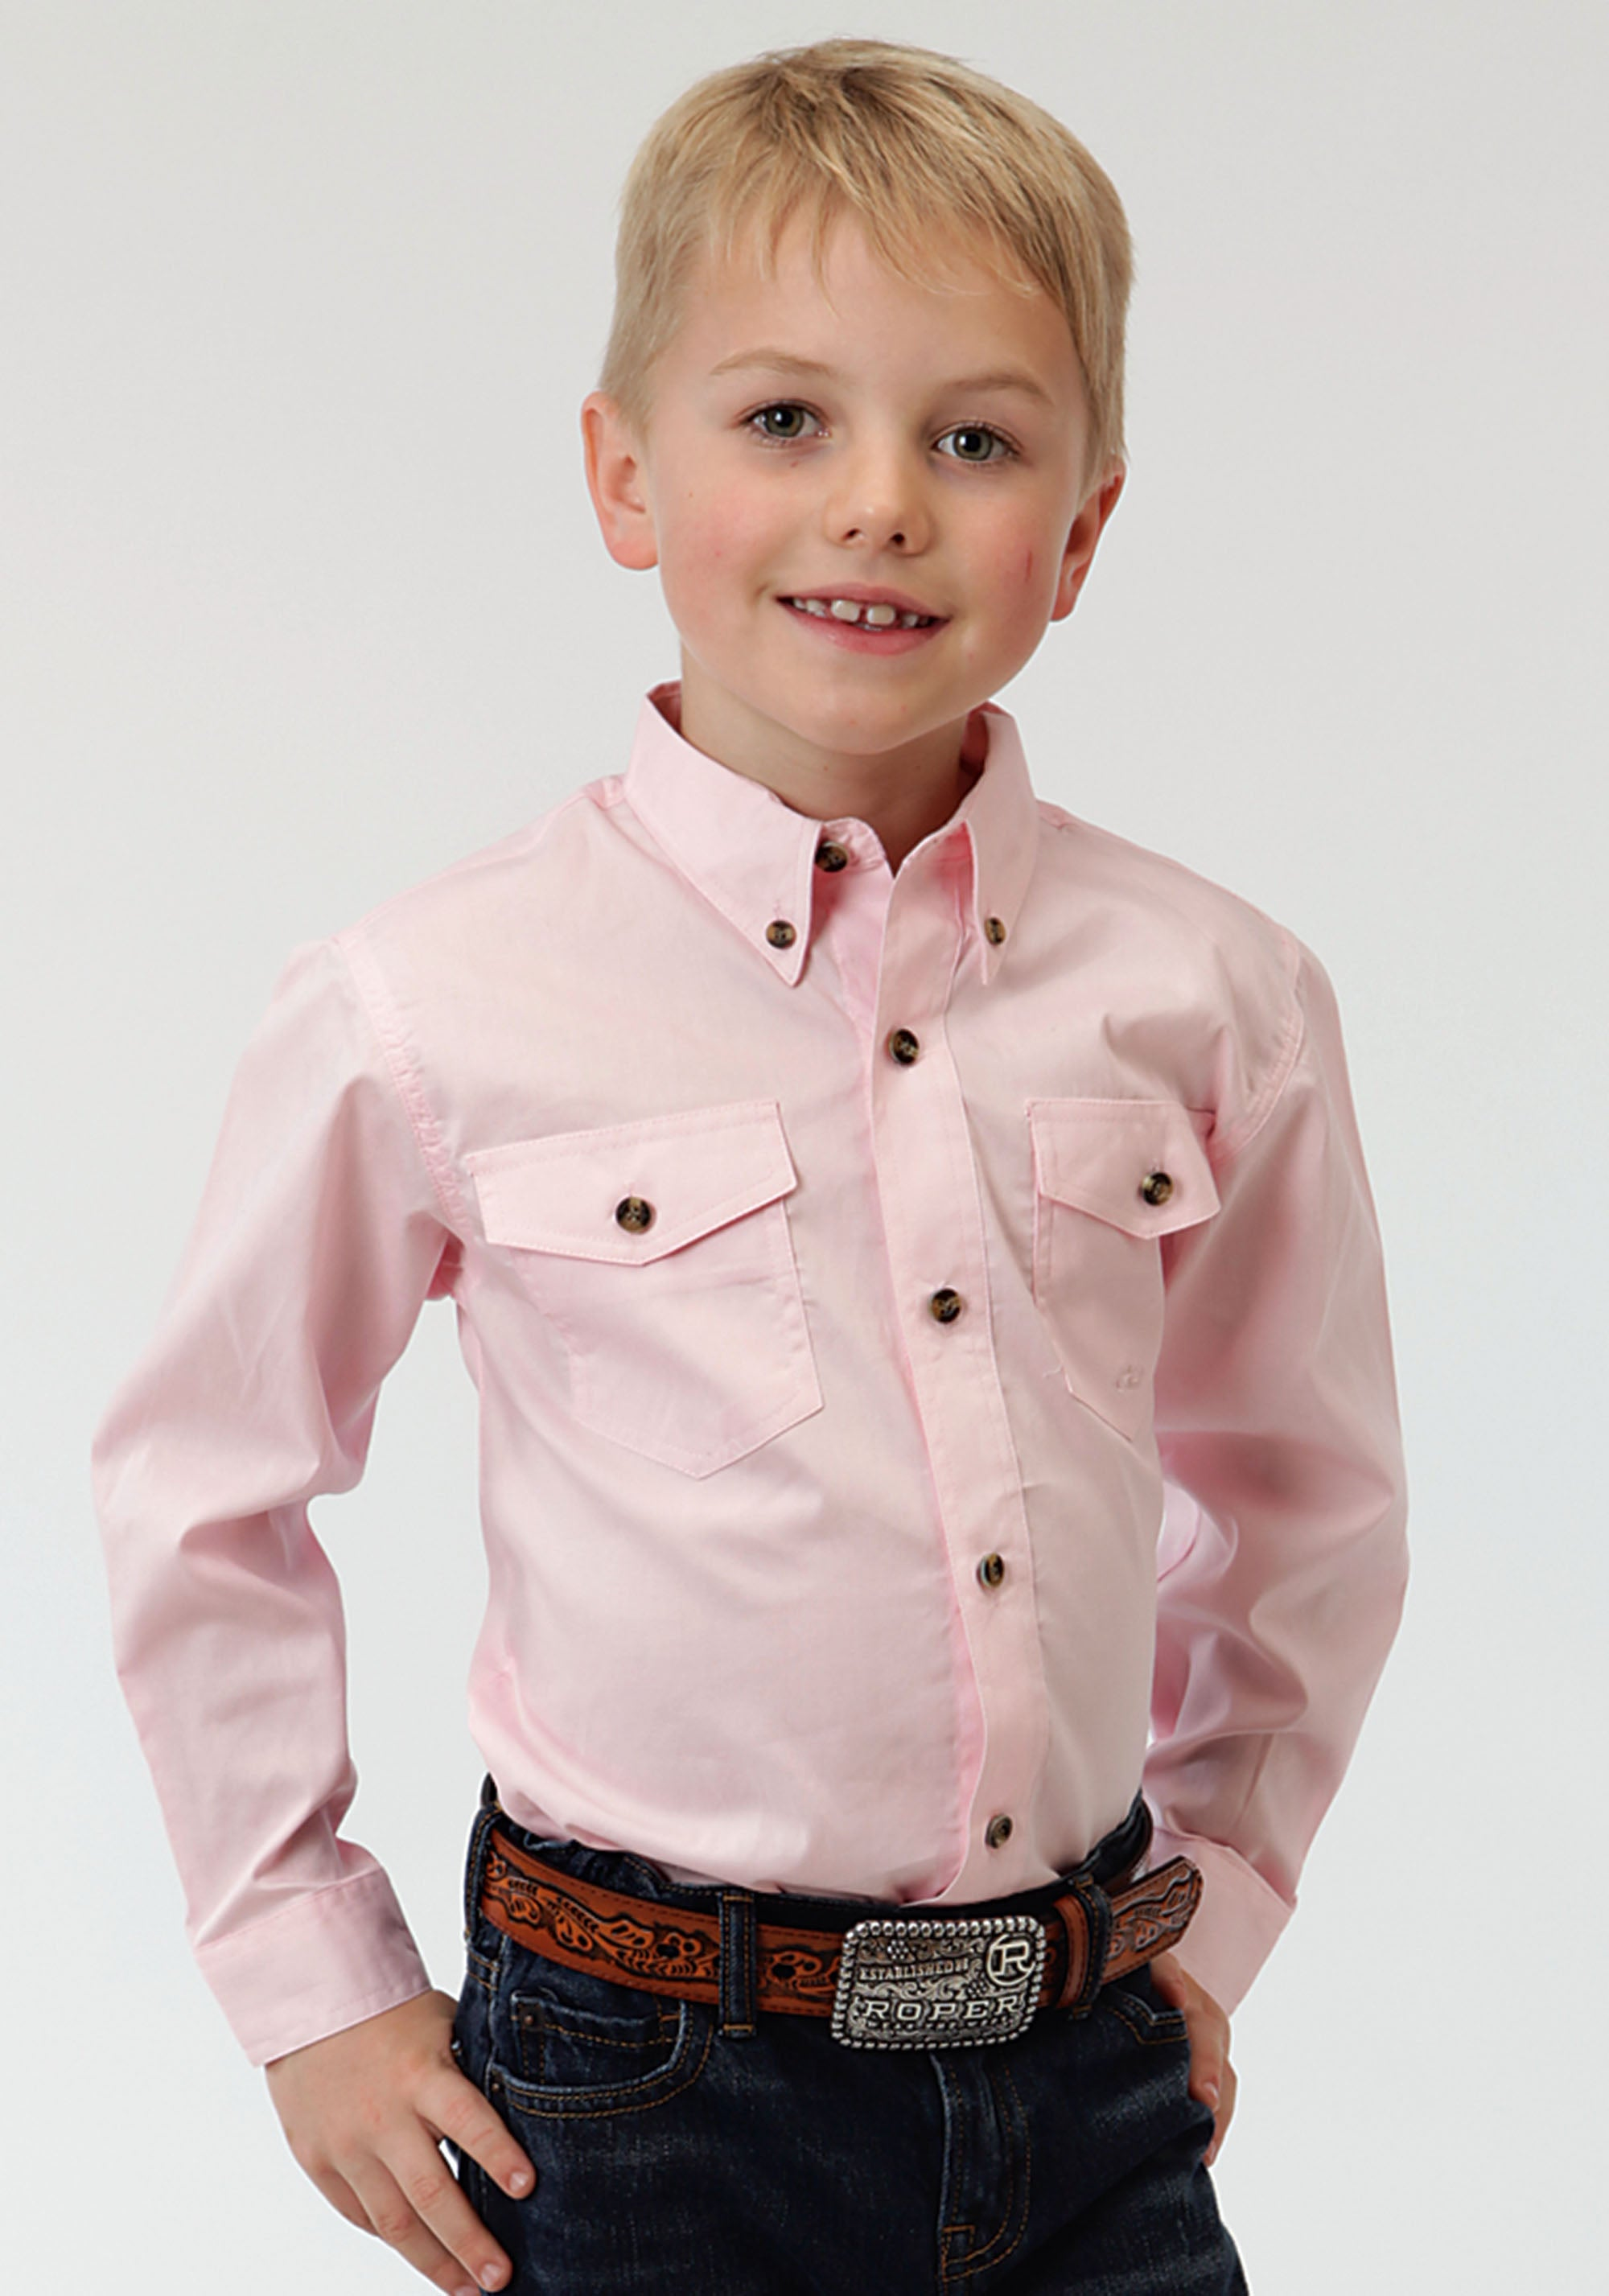 ROPER BOYS PINK SOLID POPLIN WESTERN MODLE VERGTD SNAP SOLID POPLIN BUTTON COLLECTION LONG SLEEVE SHIRT